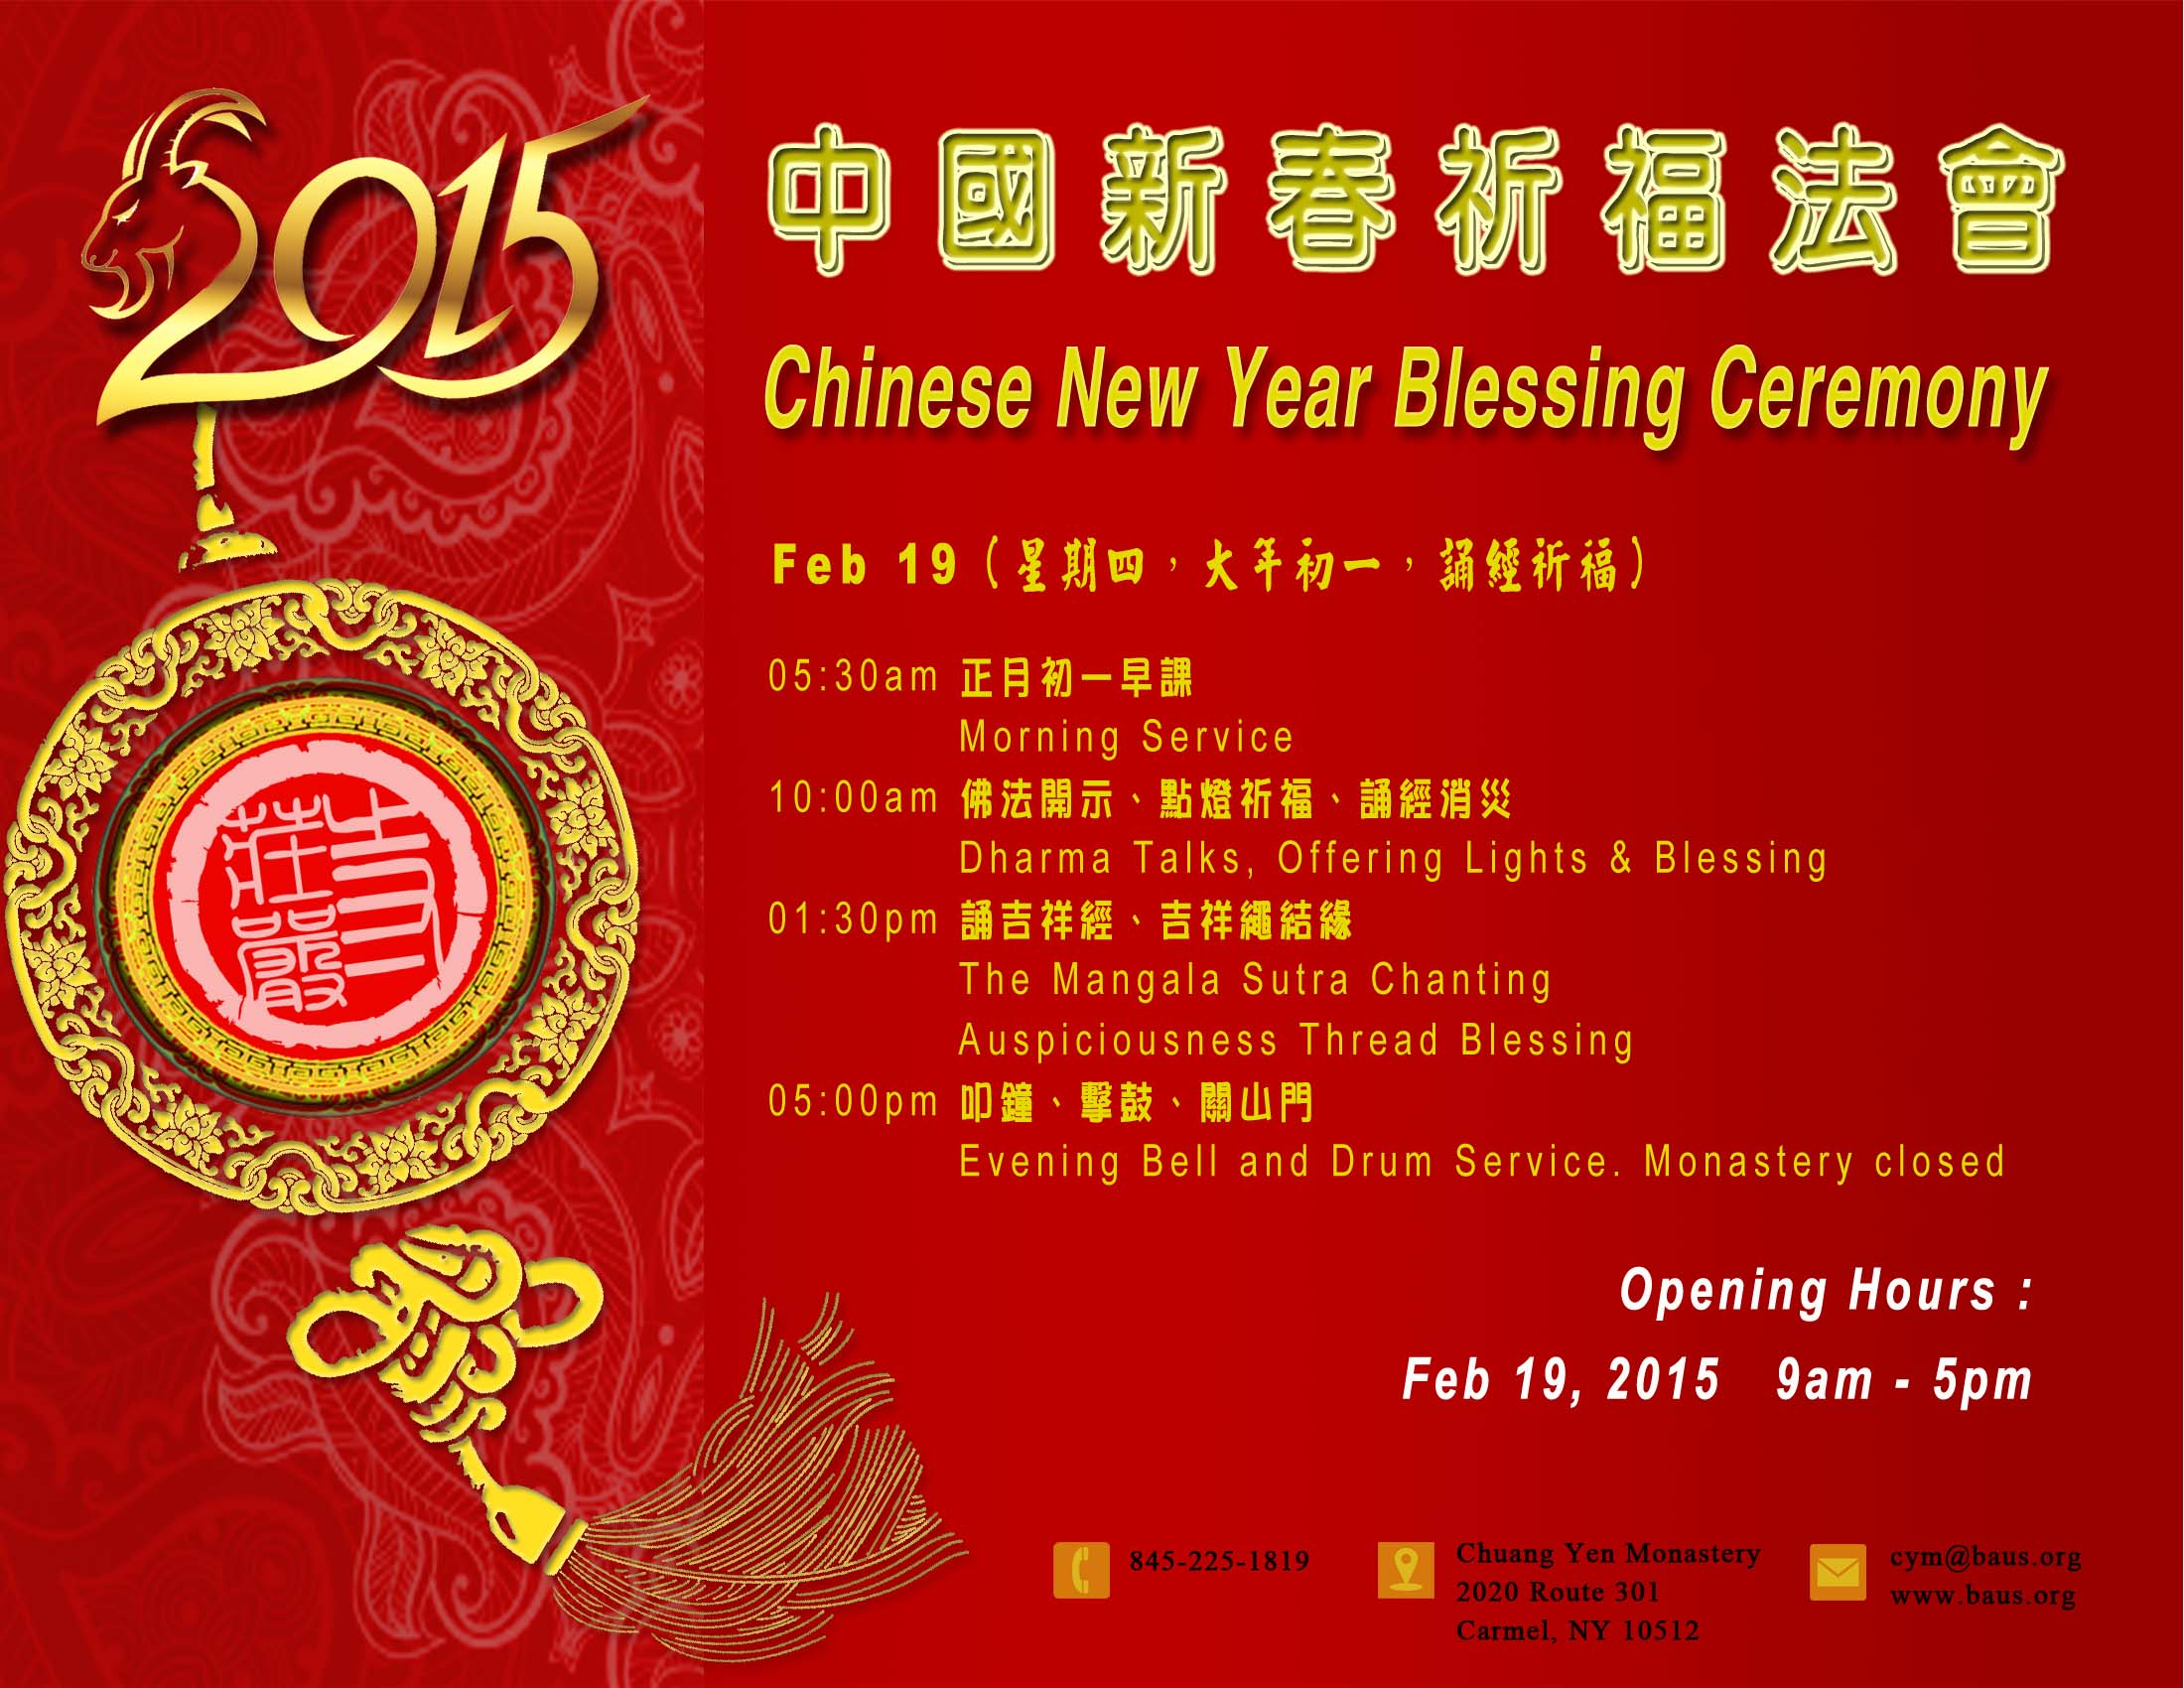 Chinese New Year Blessing Ceremony Cym 2192015